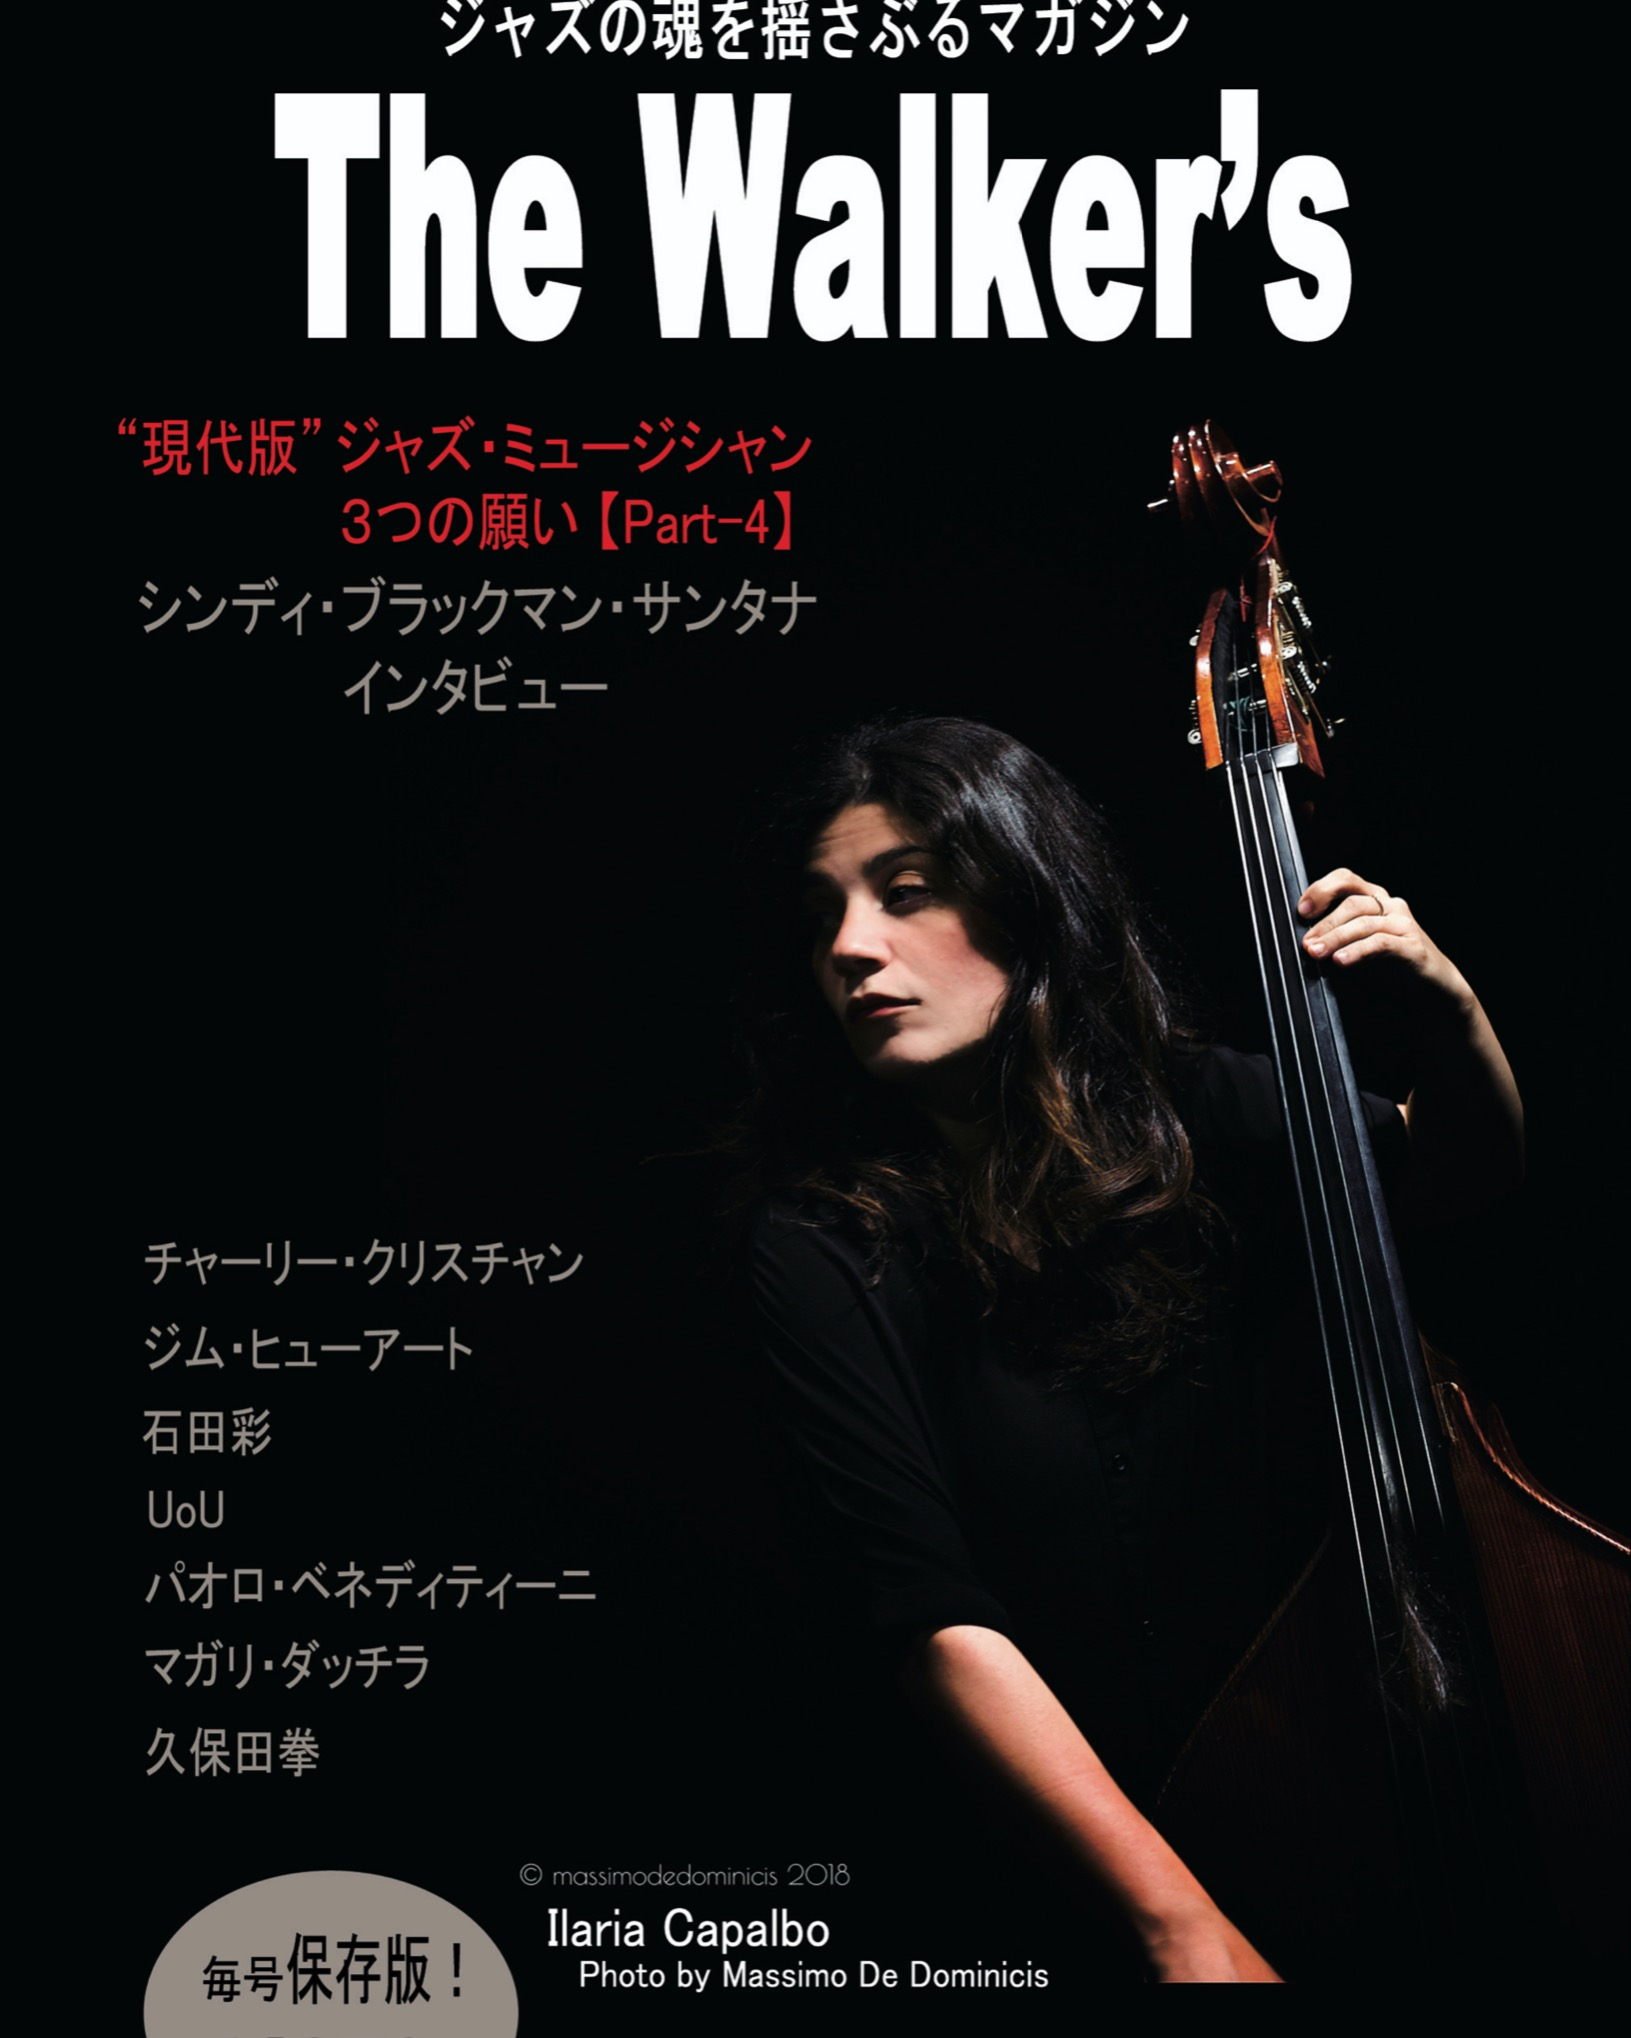 The Walker's cover, issue 55